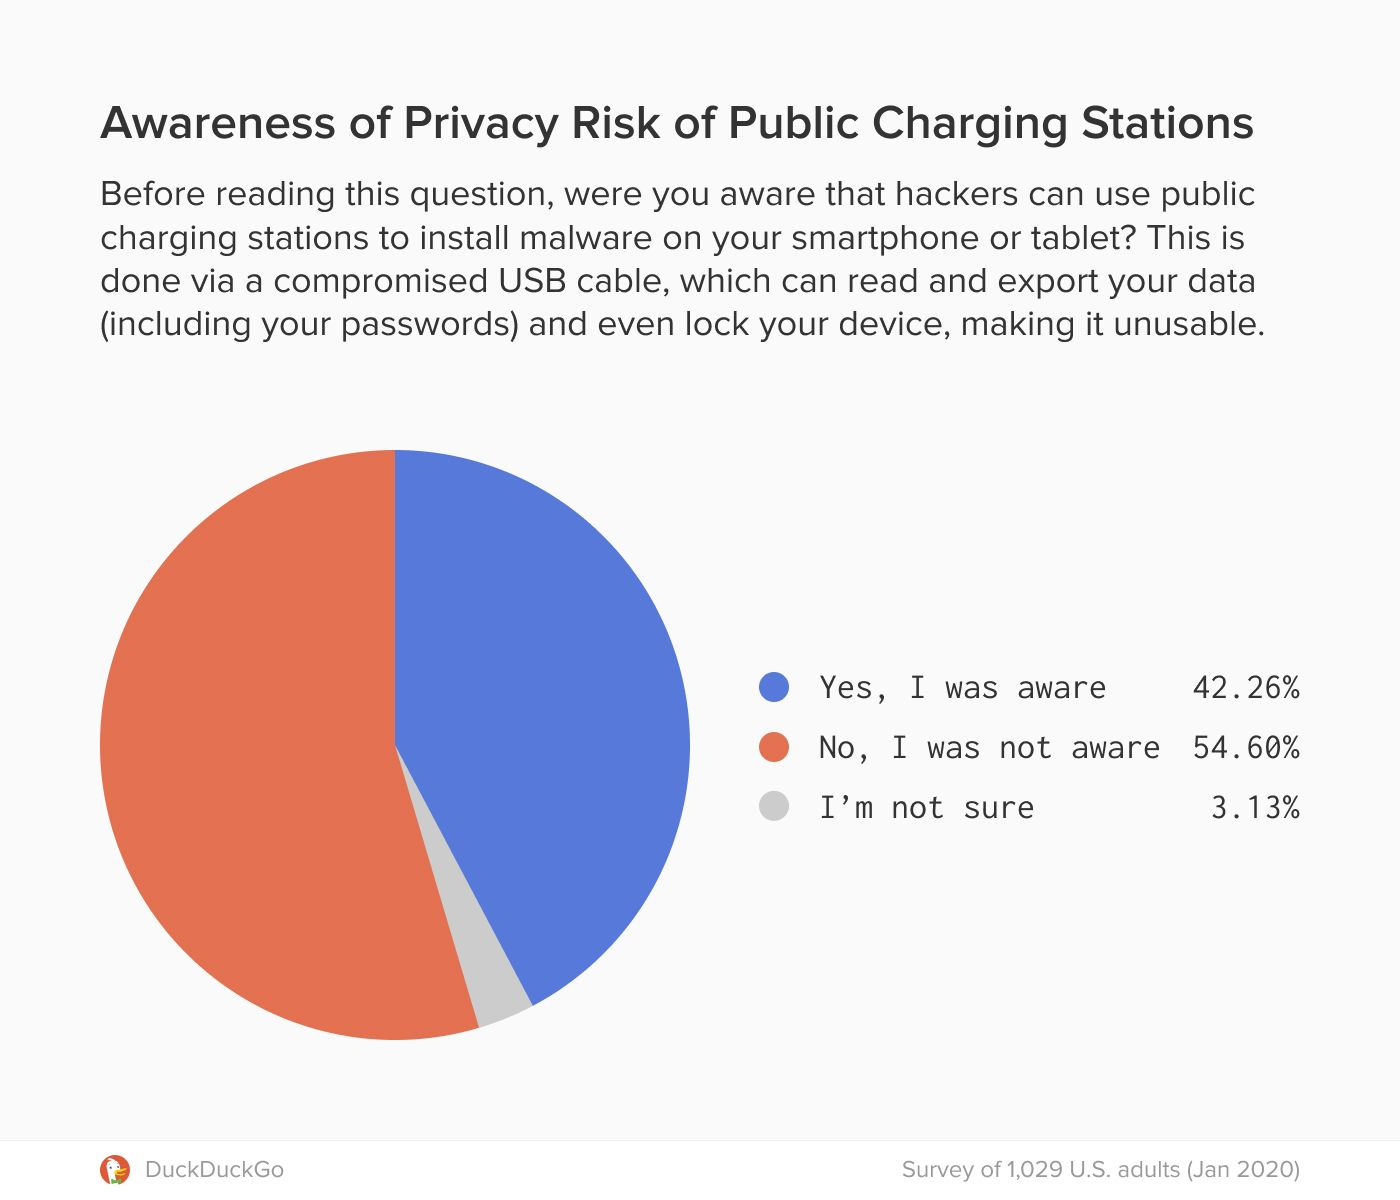 Graphic of a pie chart showing percentage of people aware of privacy risk of public charging stations